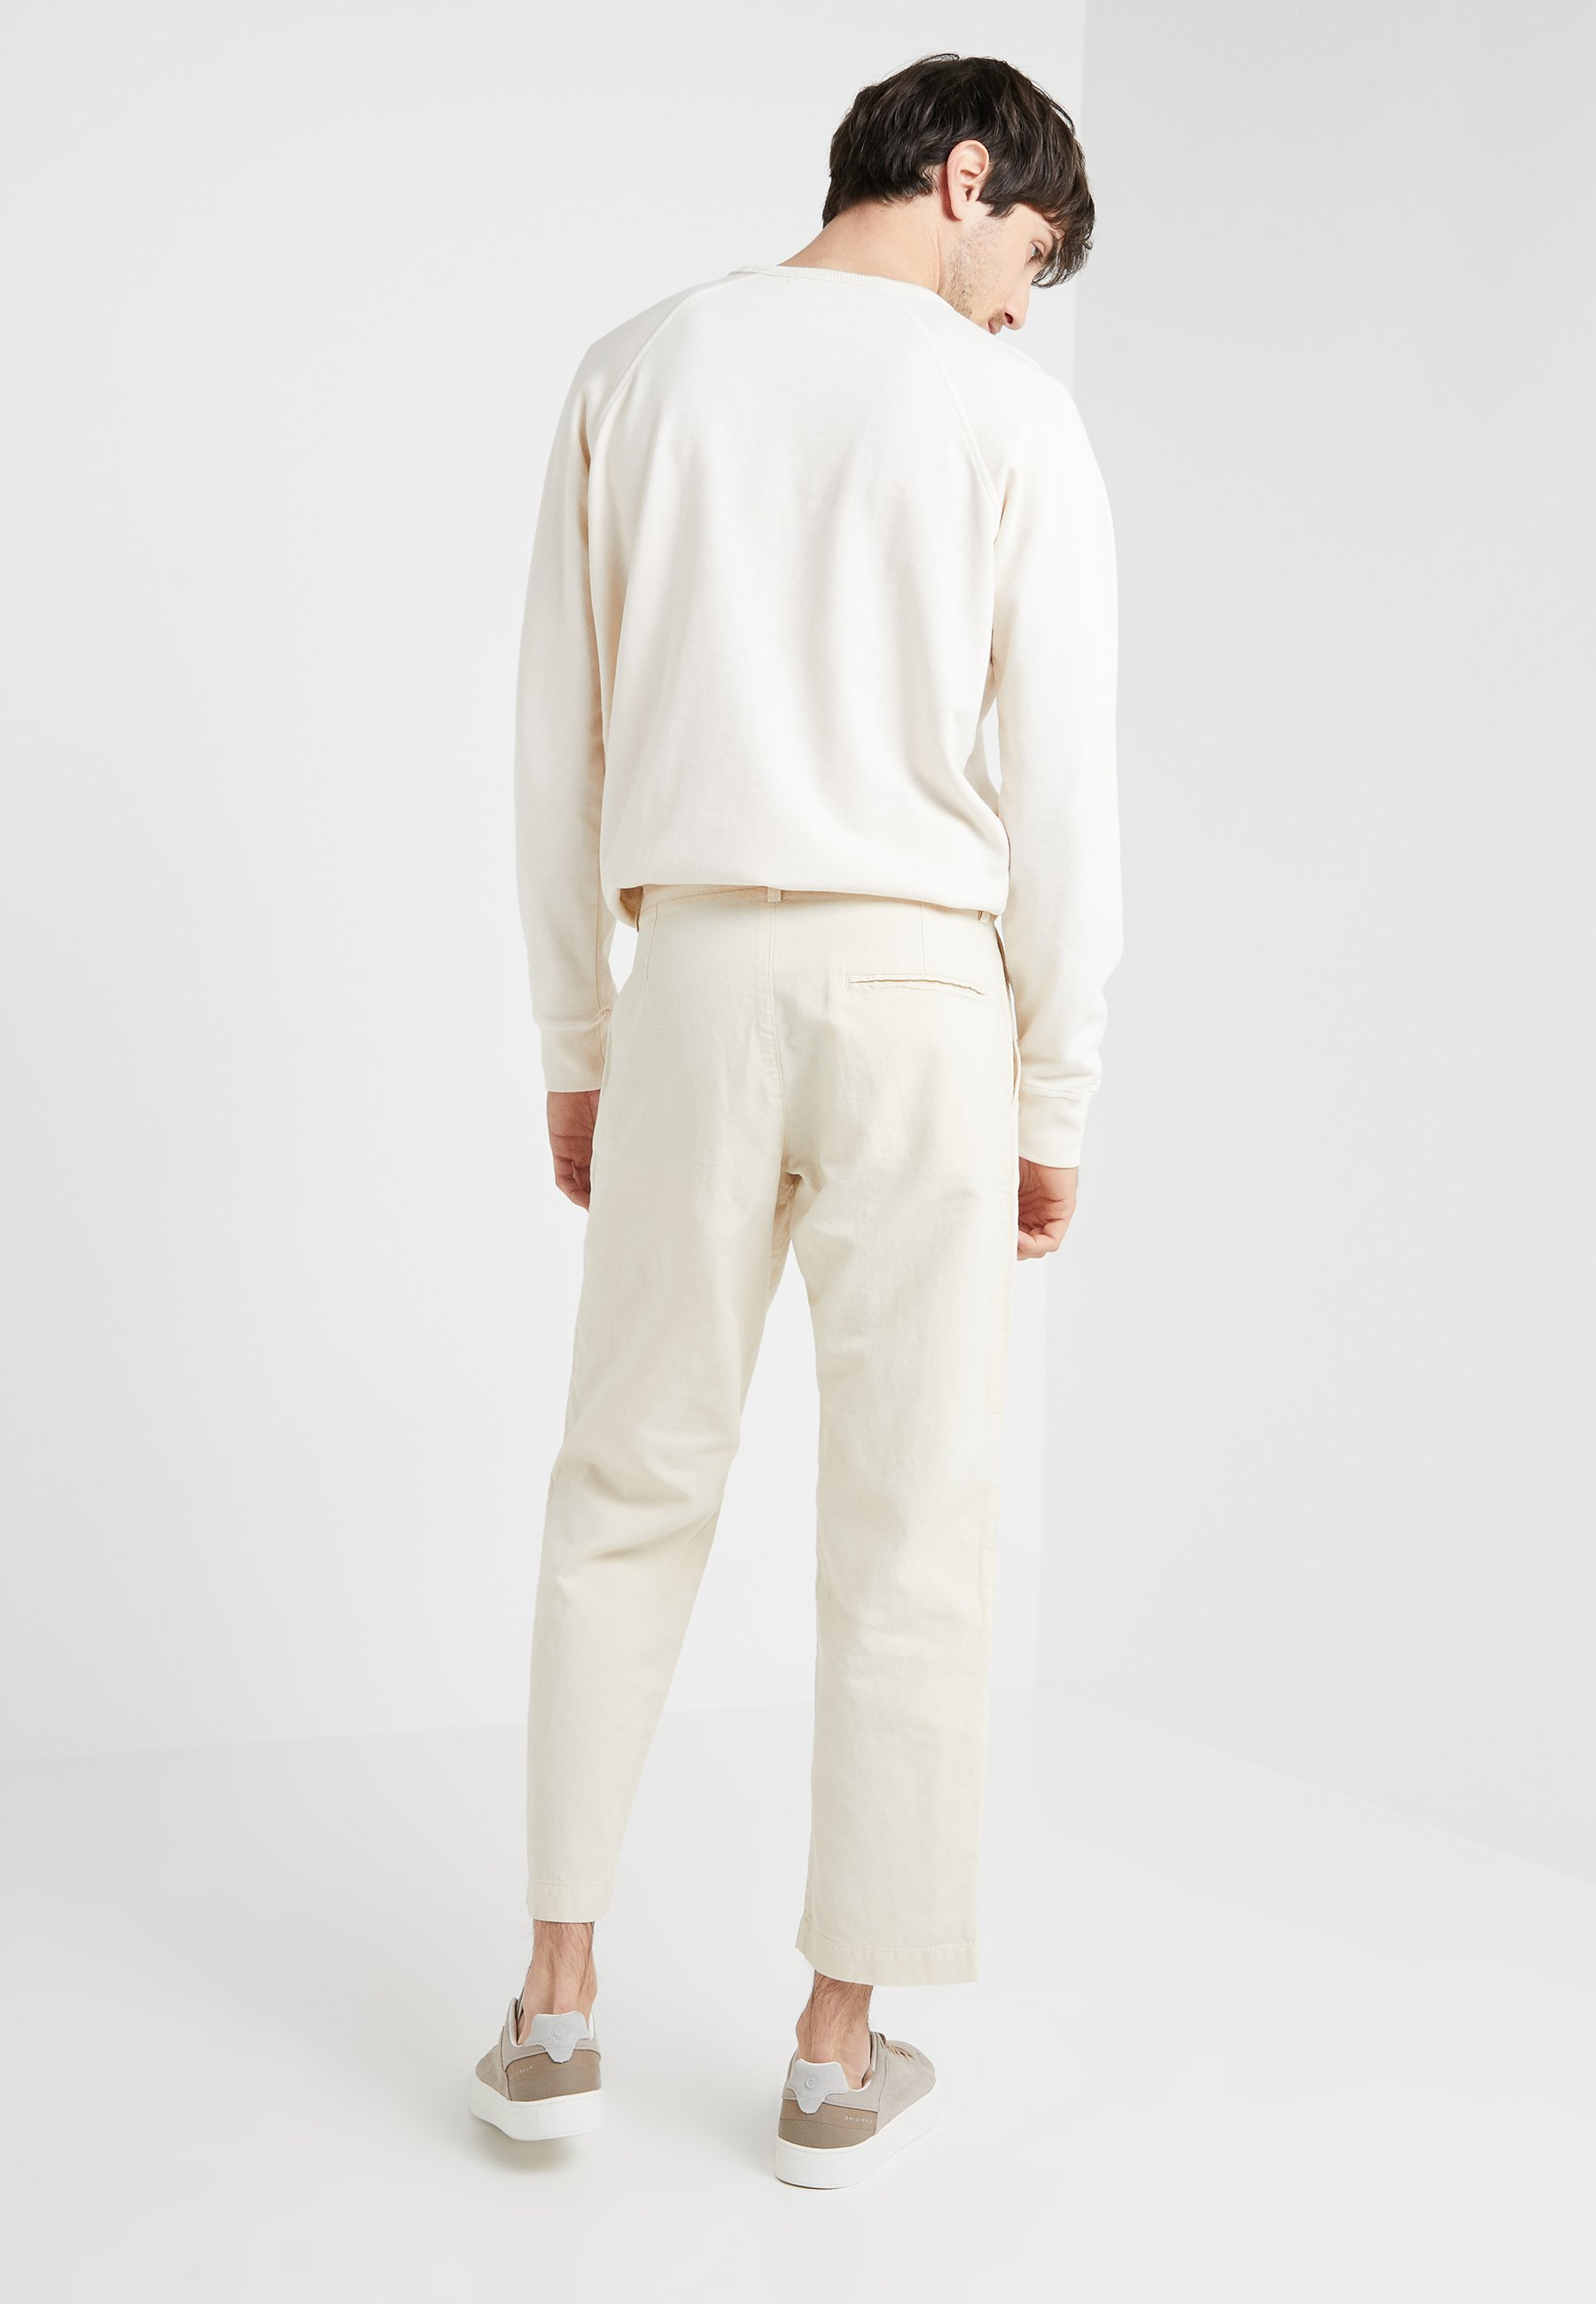 You Me Classique Create Hand Down Ymc TrouserPantalon Ecru Must vnmN80OyPw